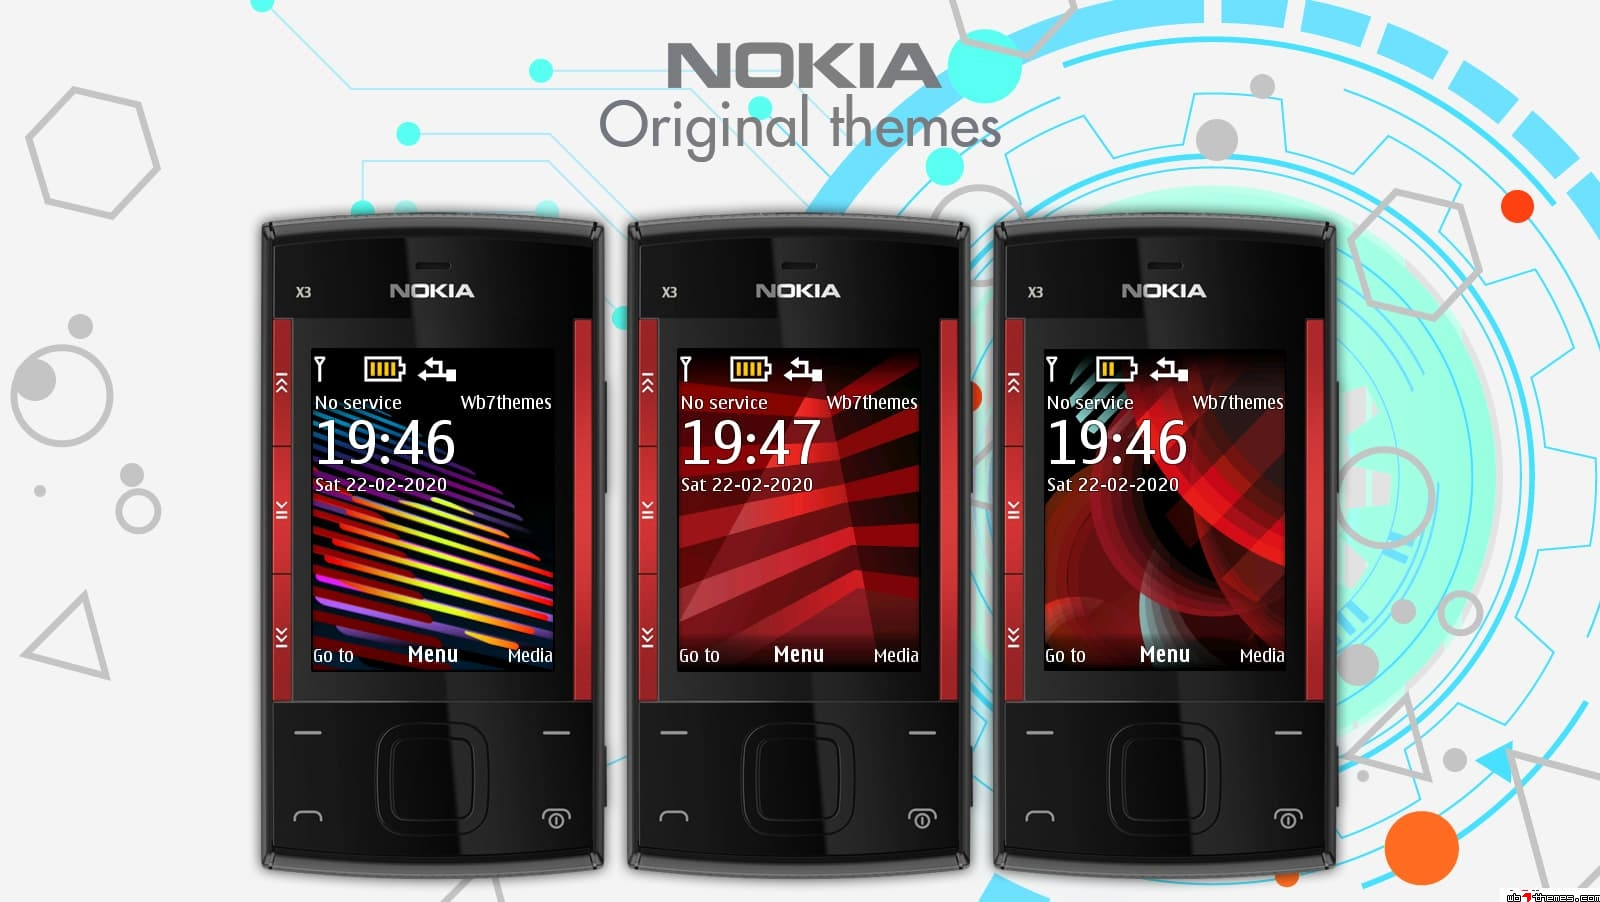 Nokia X2-00 original themes swf and static wallpapers